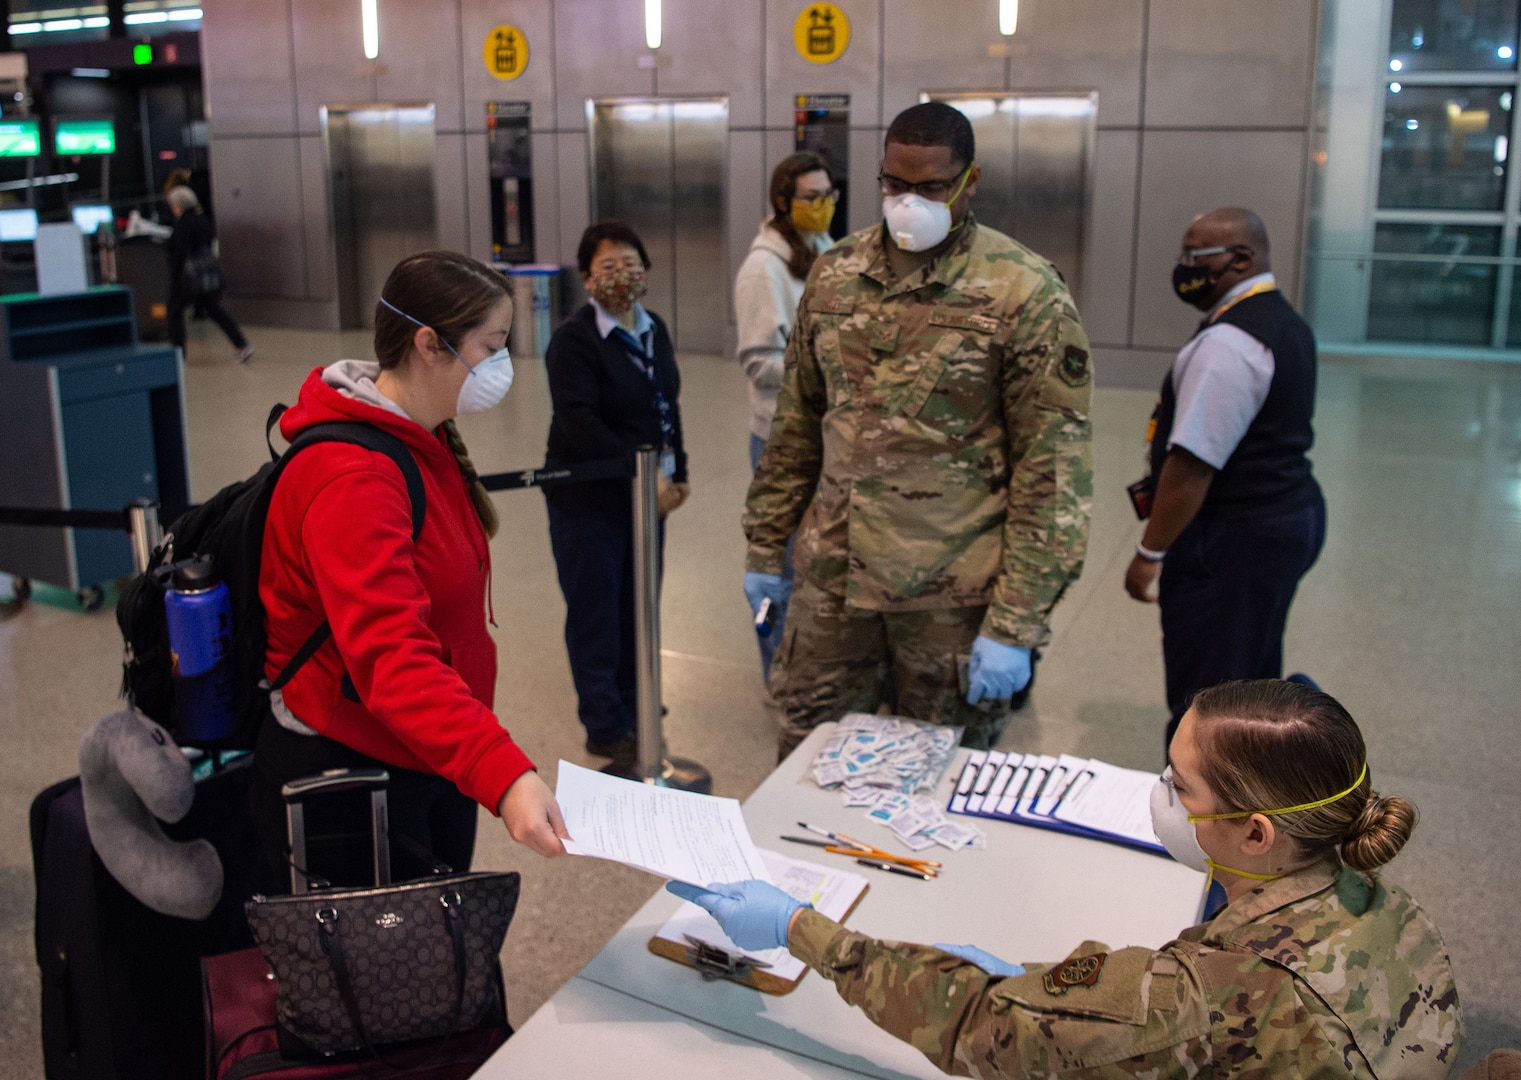 Air Force Implements COVID-19 Screenings at Seattle-Tacoma International Airport